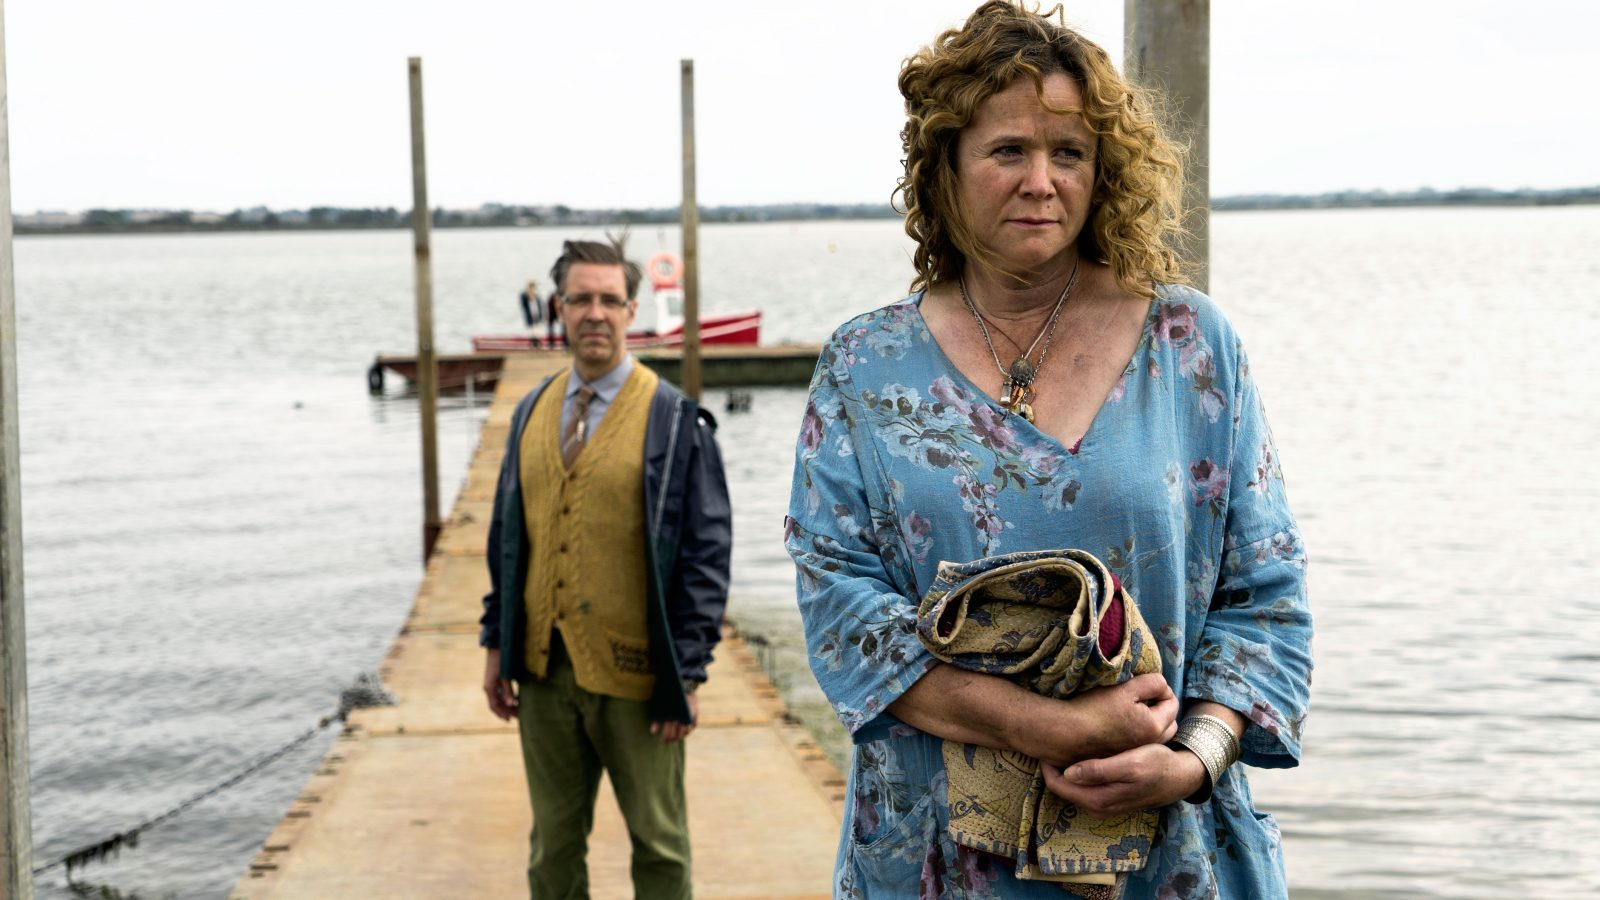 Emily Watson and Paddy Considine stood on a wooden pier stretching out to sea. Part of The Third Day TV series.